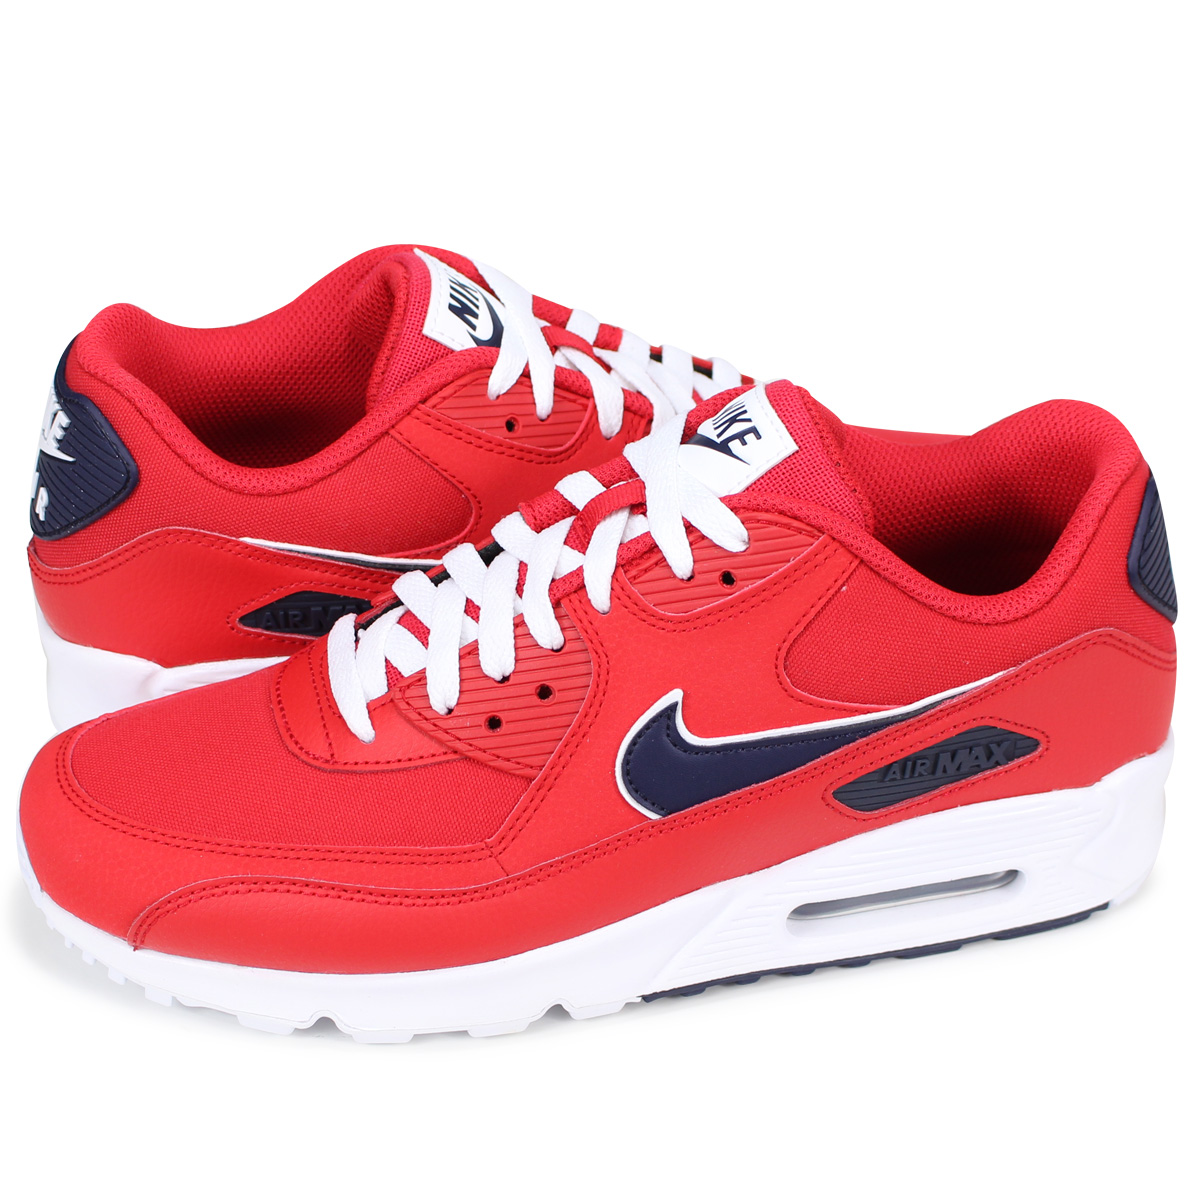 sneakers for cheap e5b79 c0028 Product Information